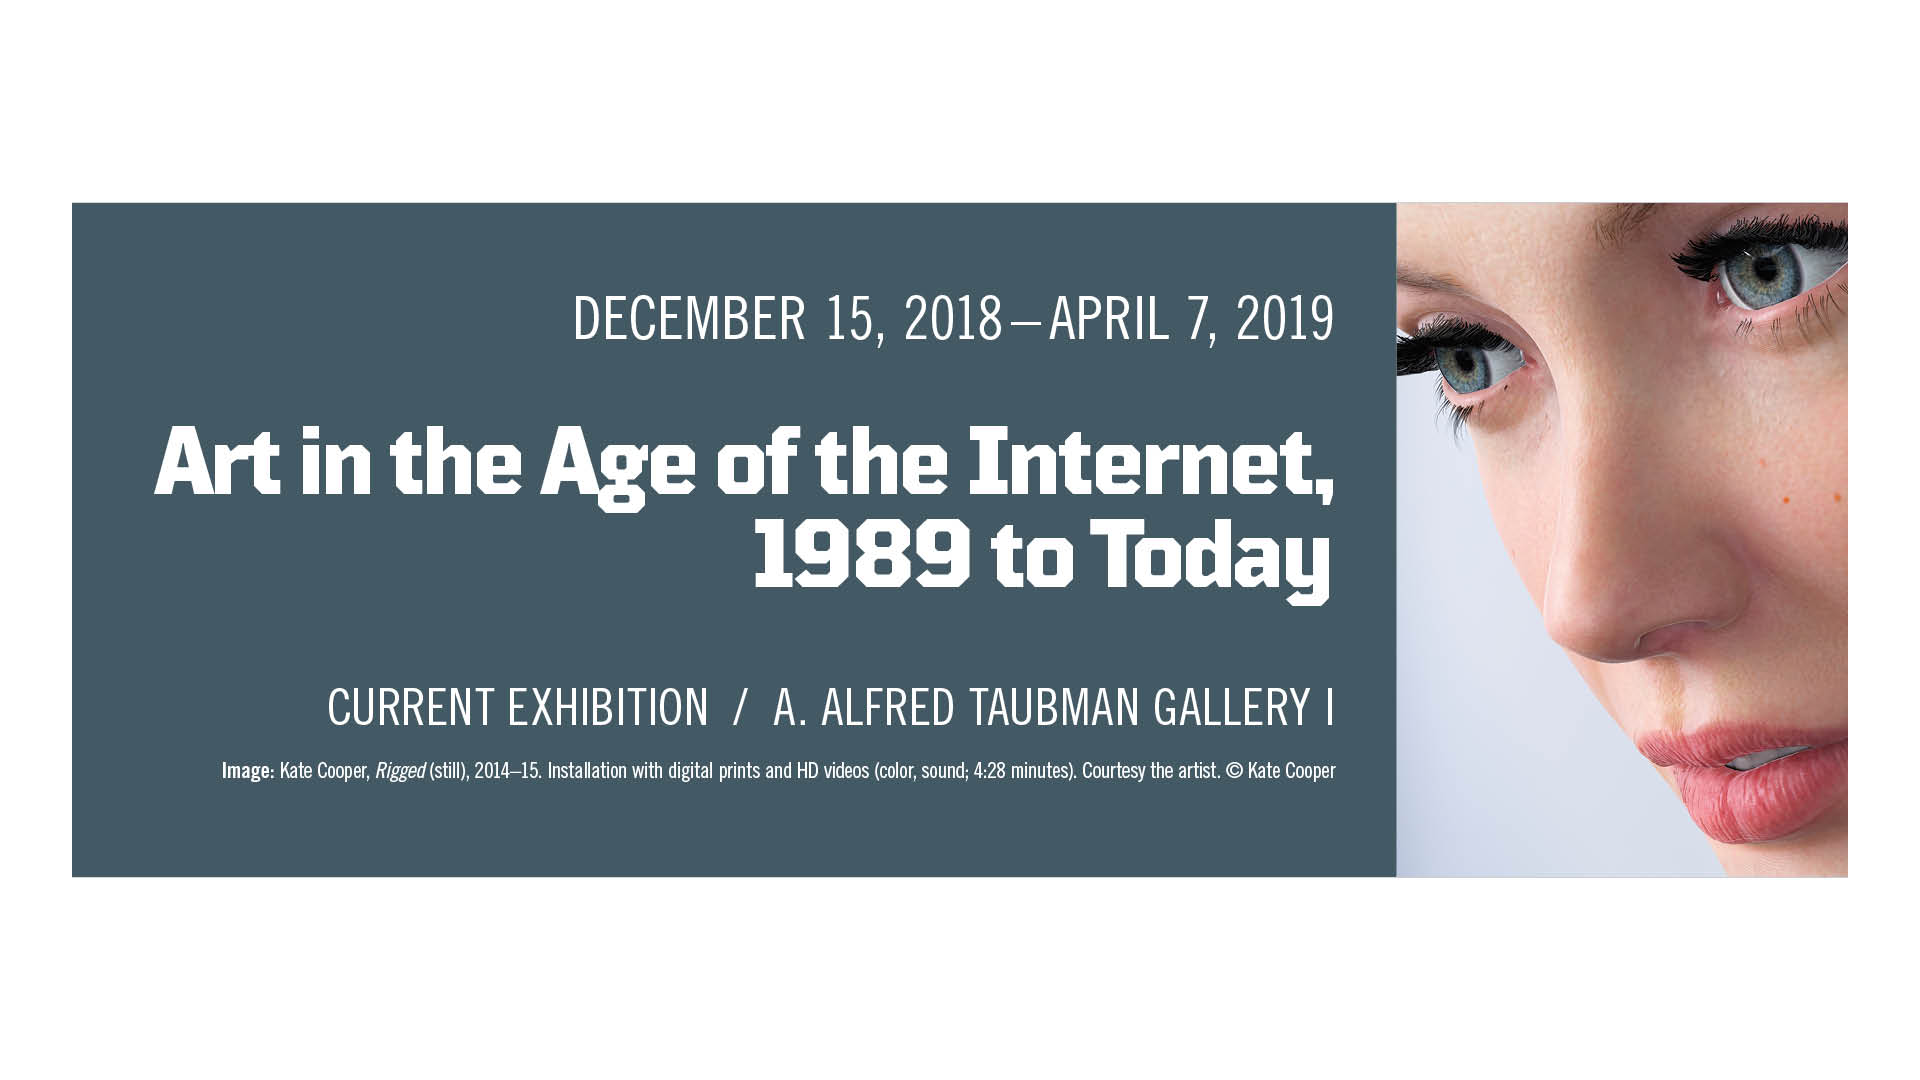 Art in the Age of the Internet, 1989 to Today, on view now.